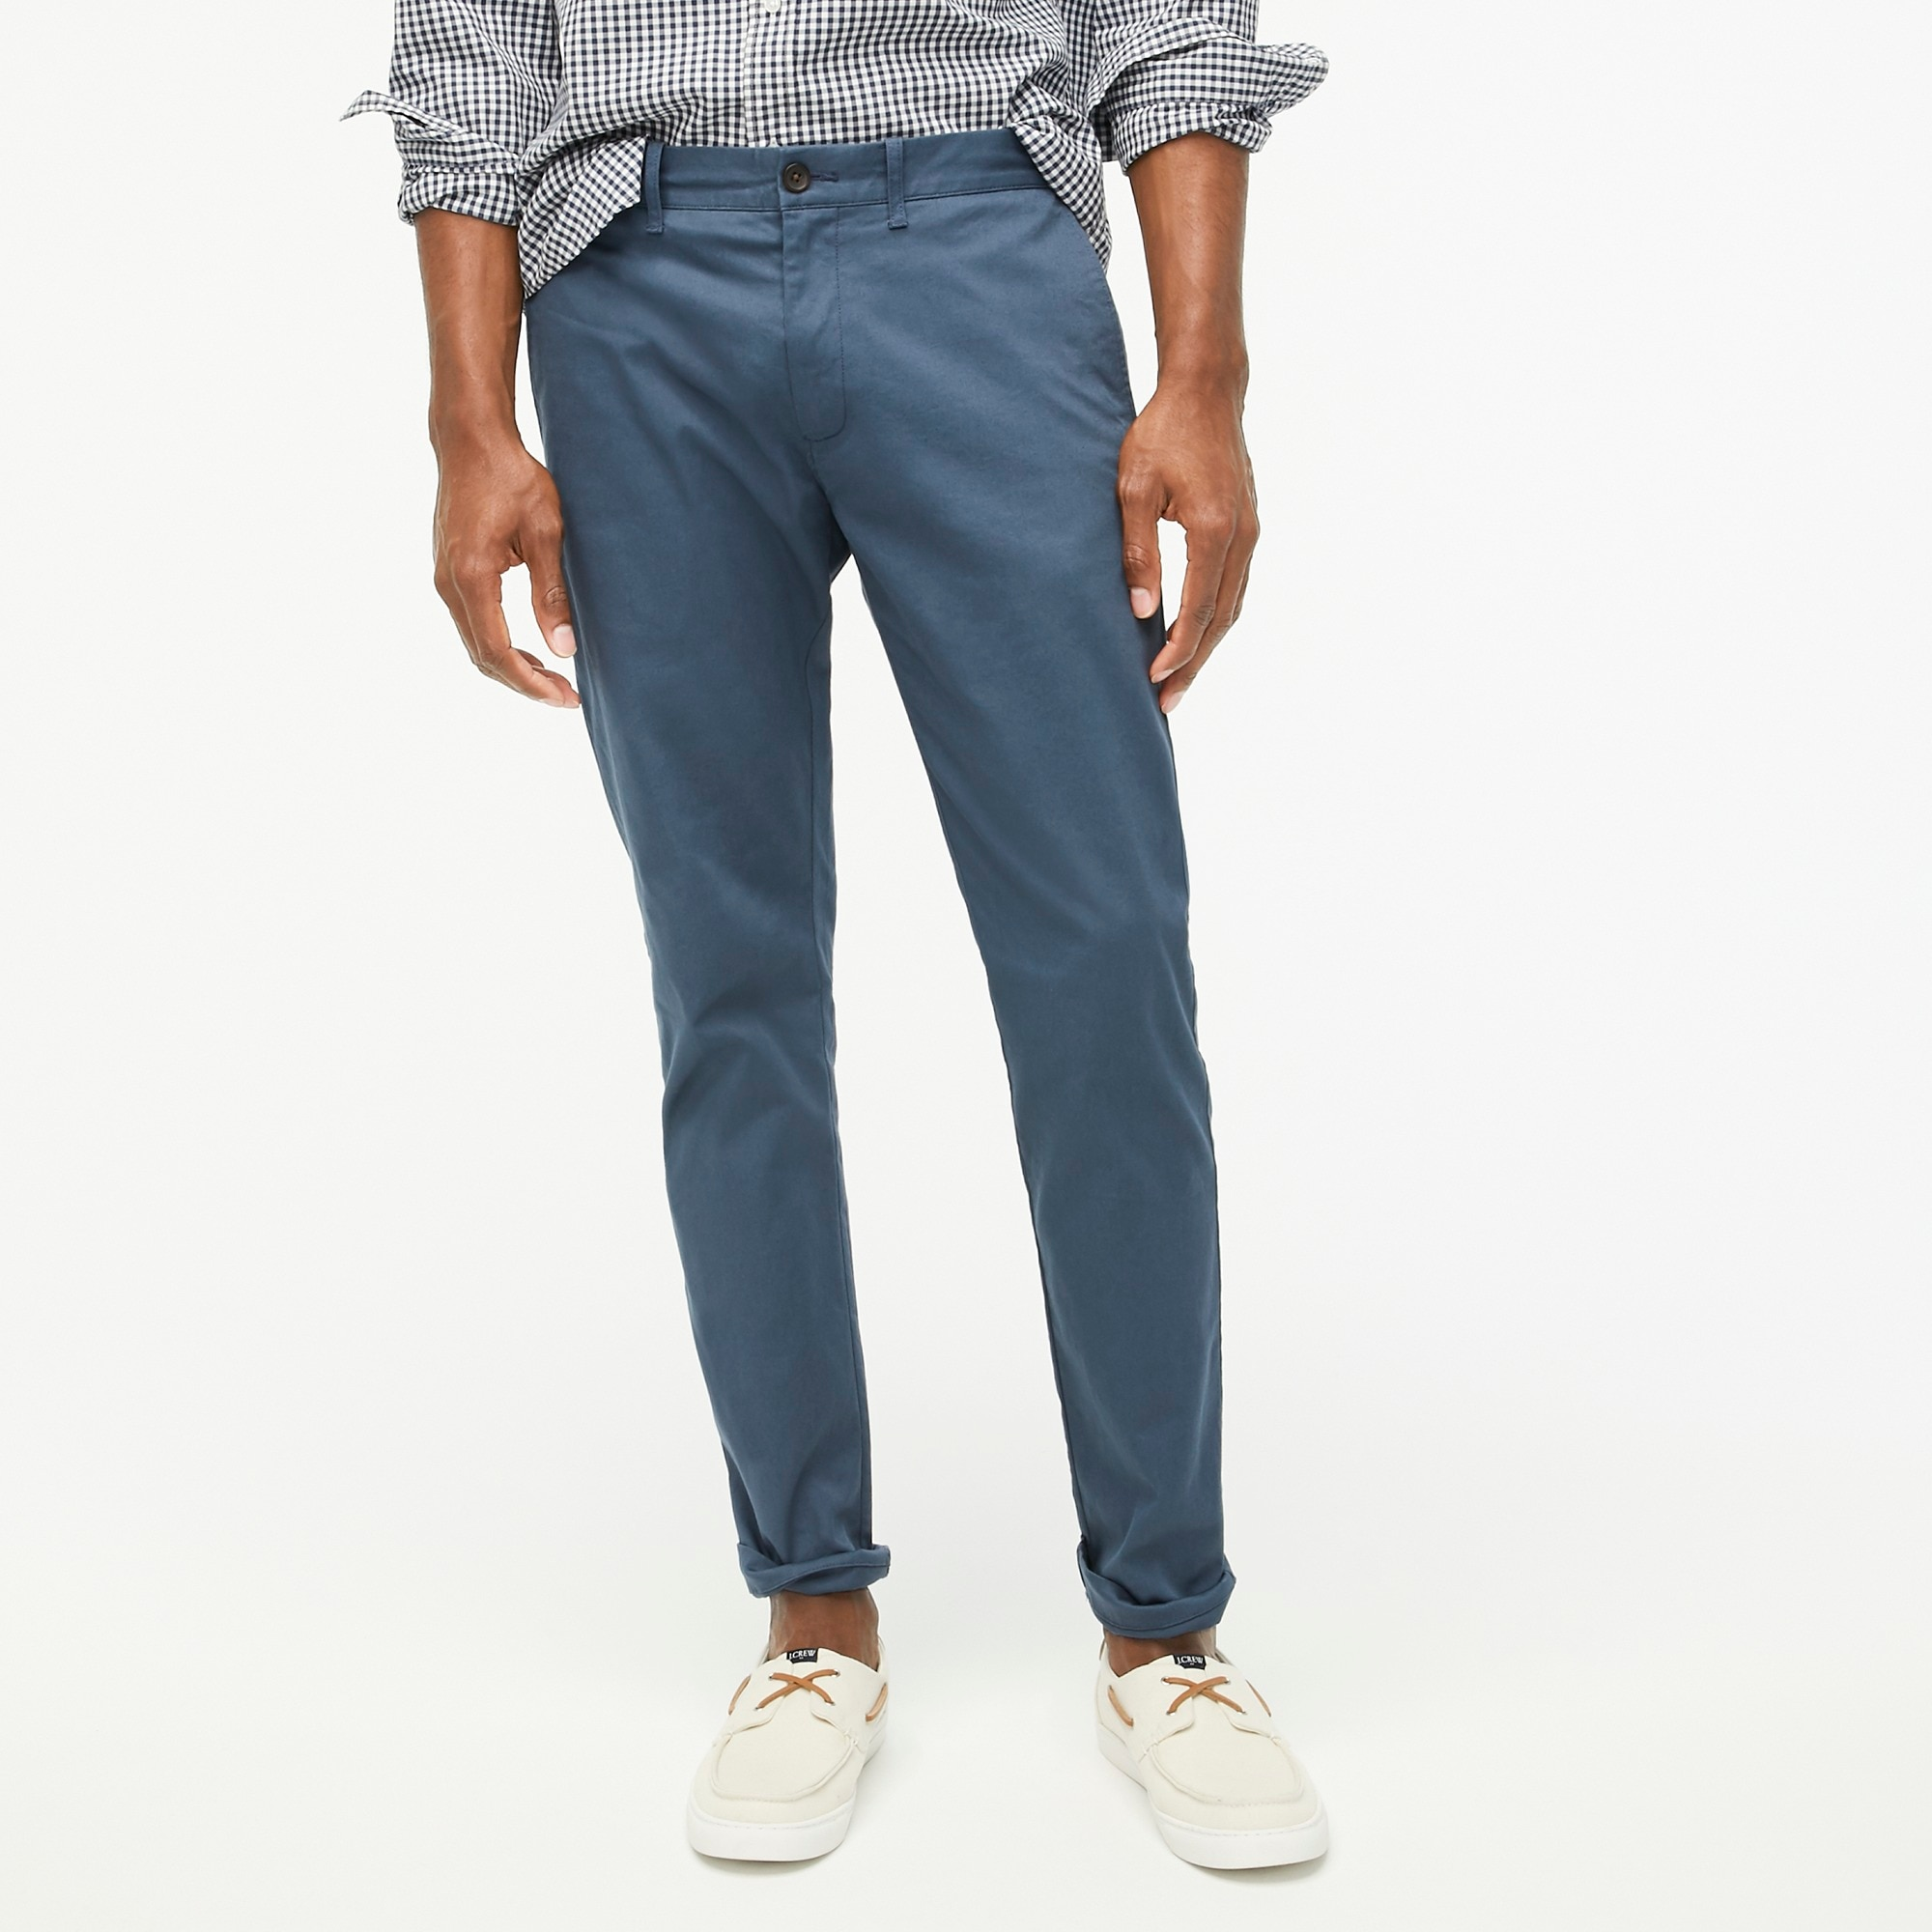 Driggs slim-fit flex chino factorymen pants c